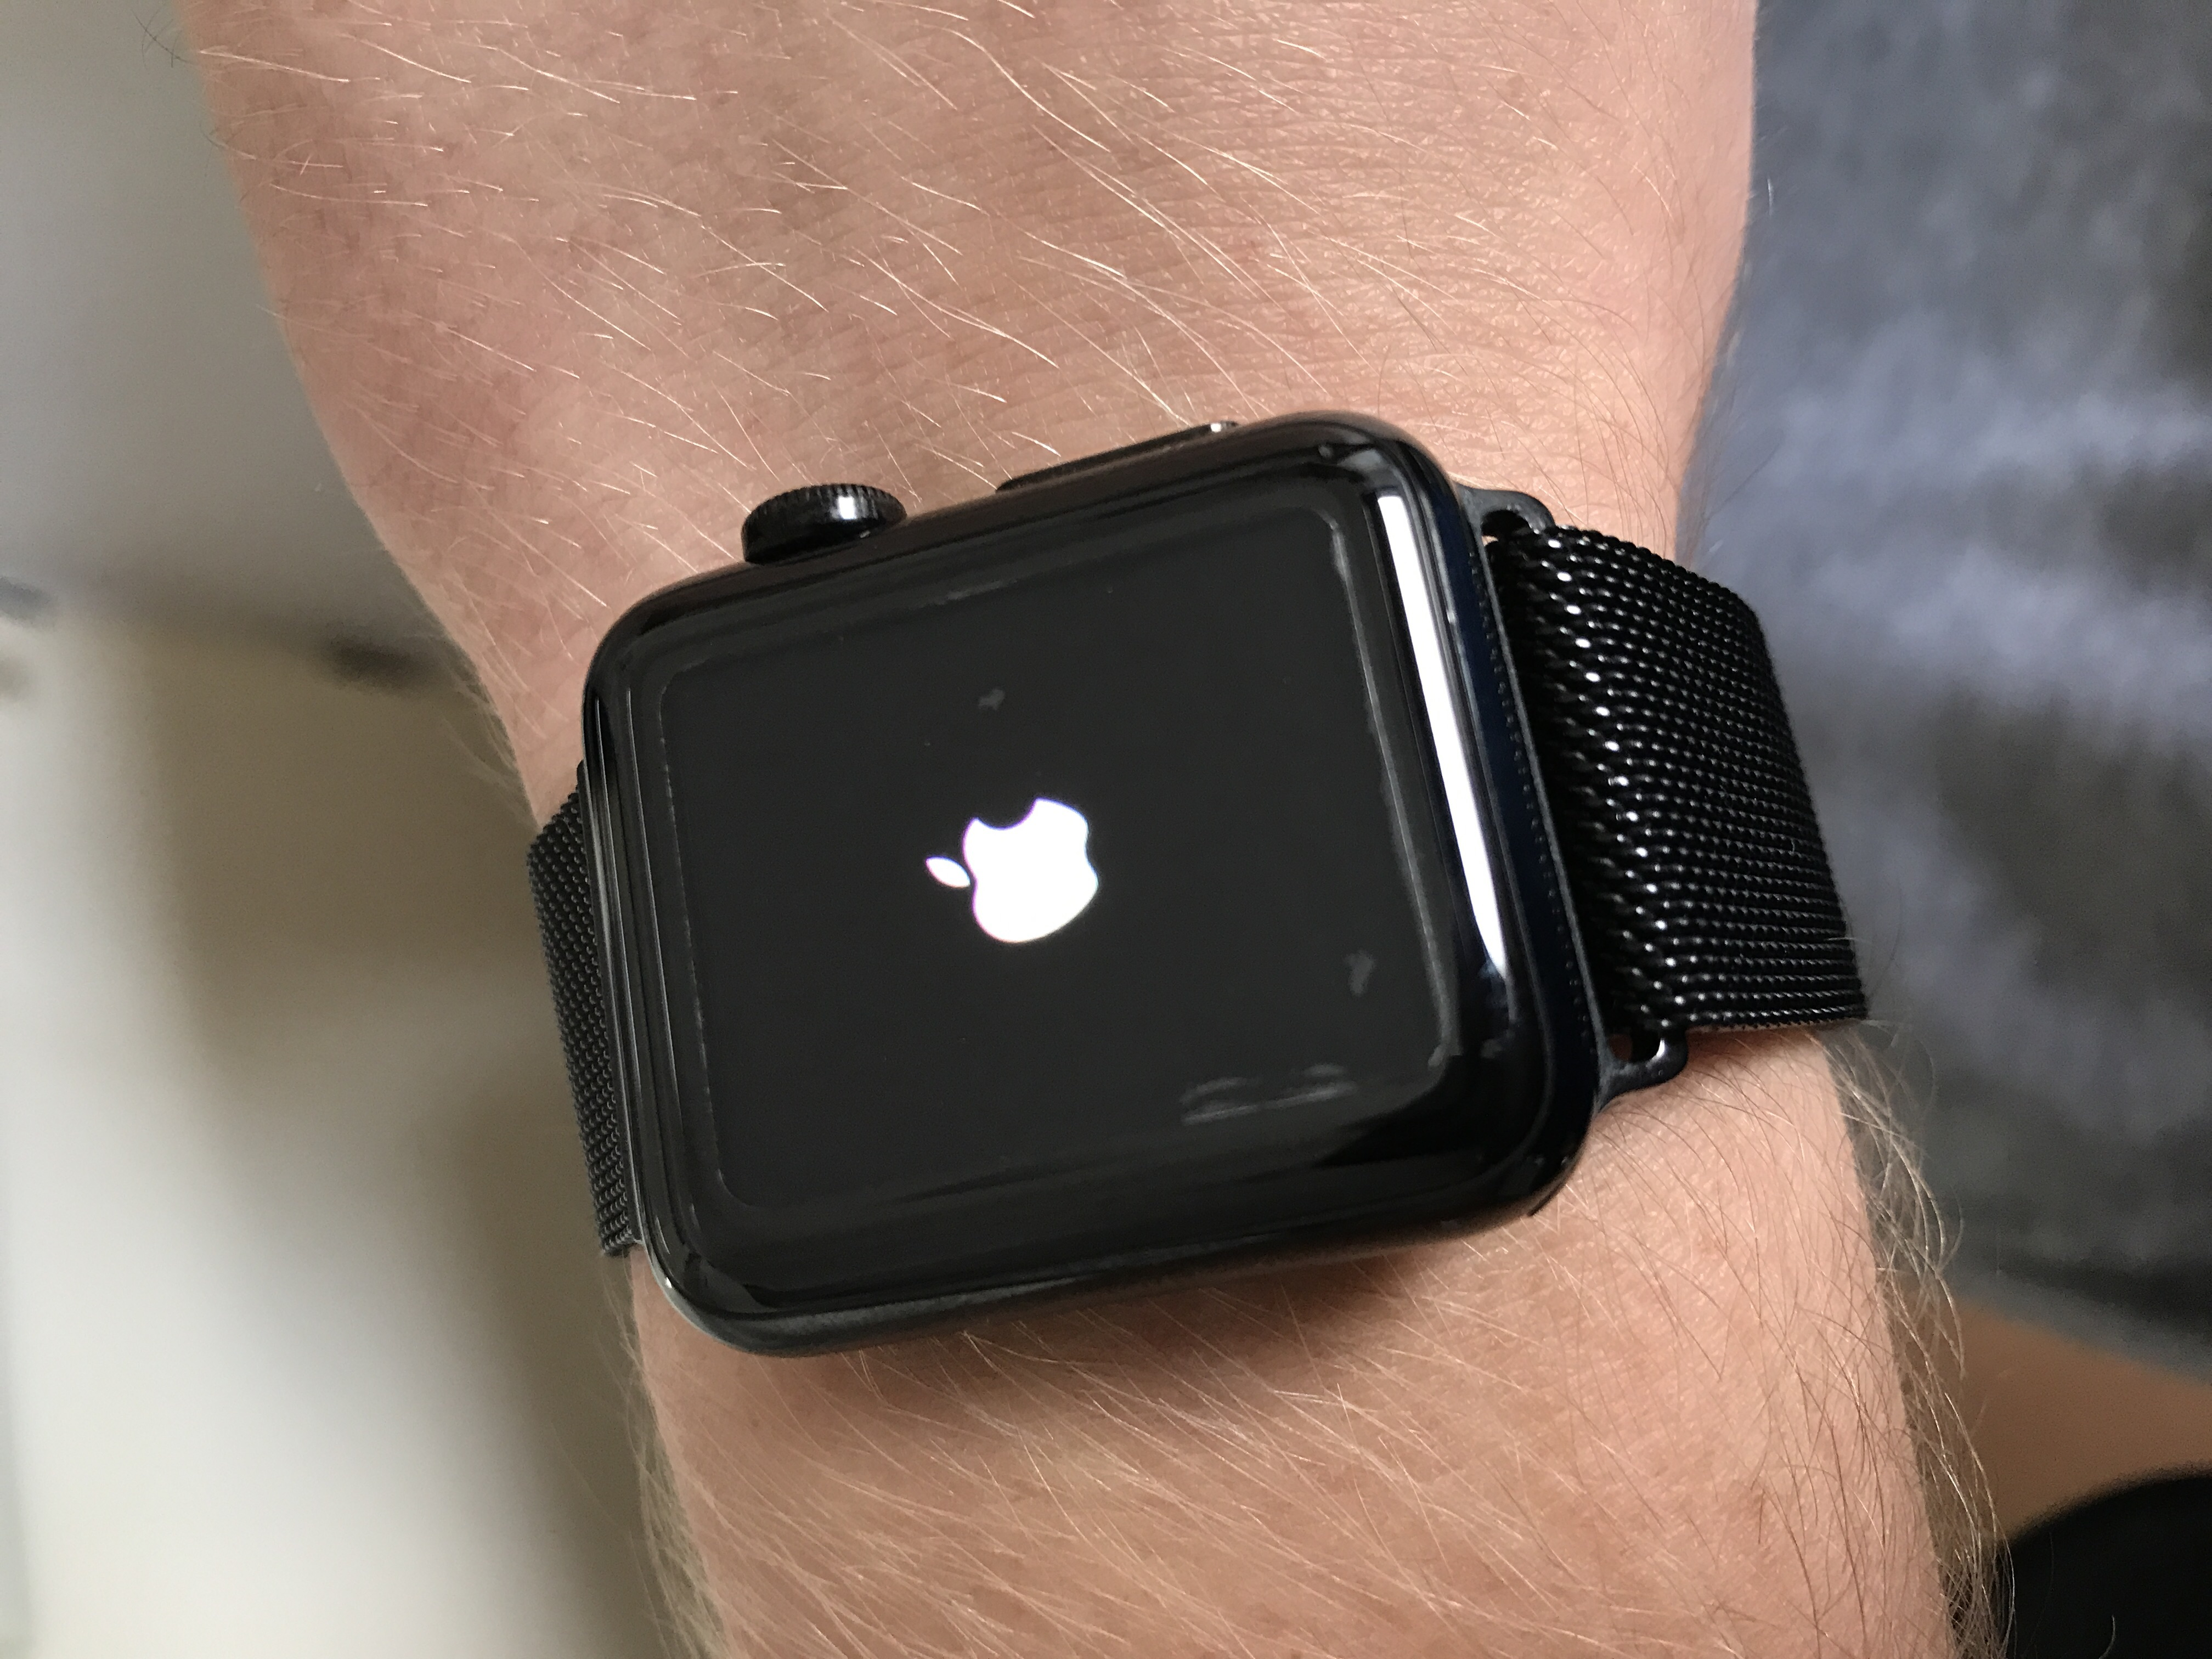 Apple Watch boot freeze after 4 3 update - Apple Community